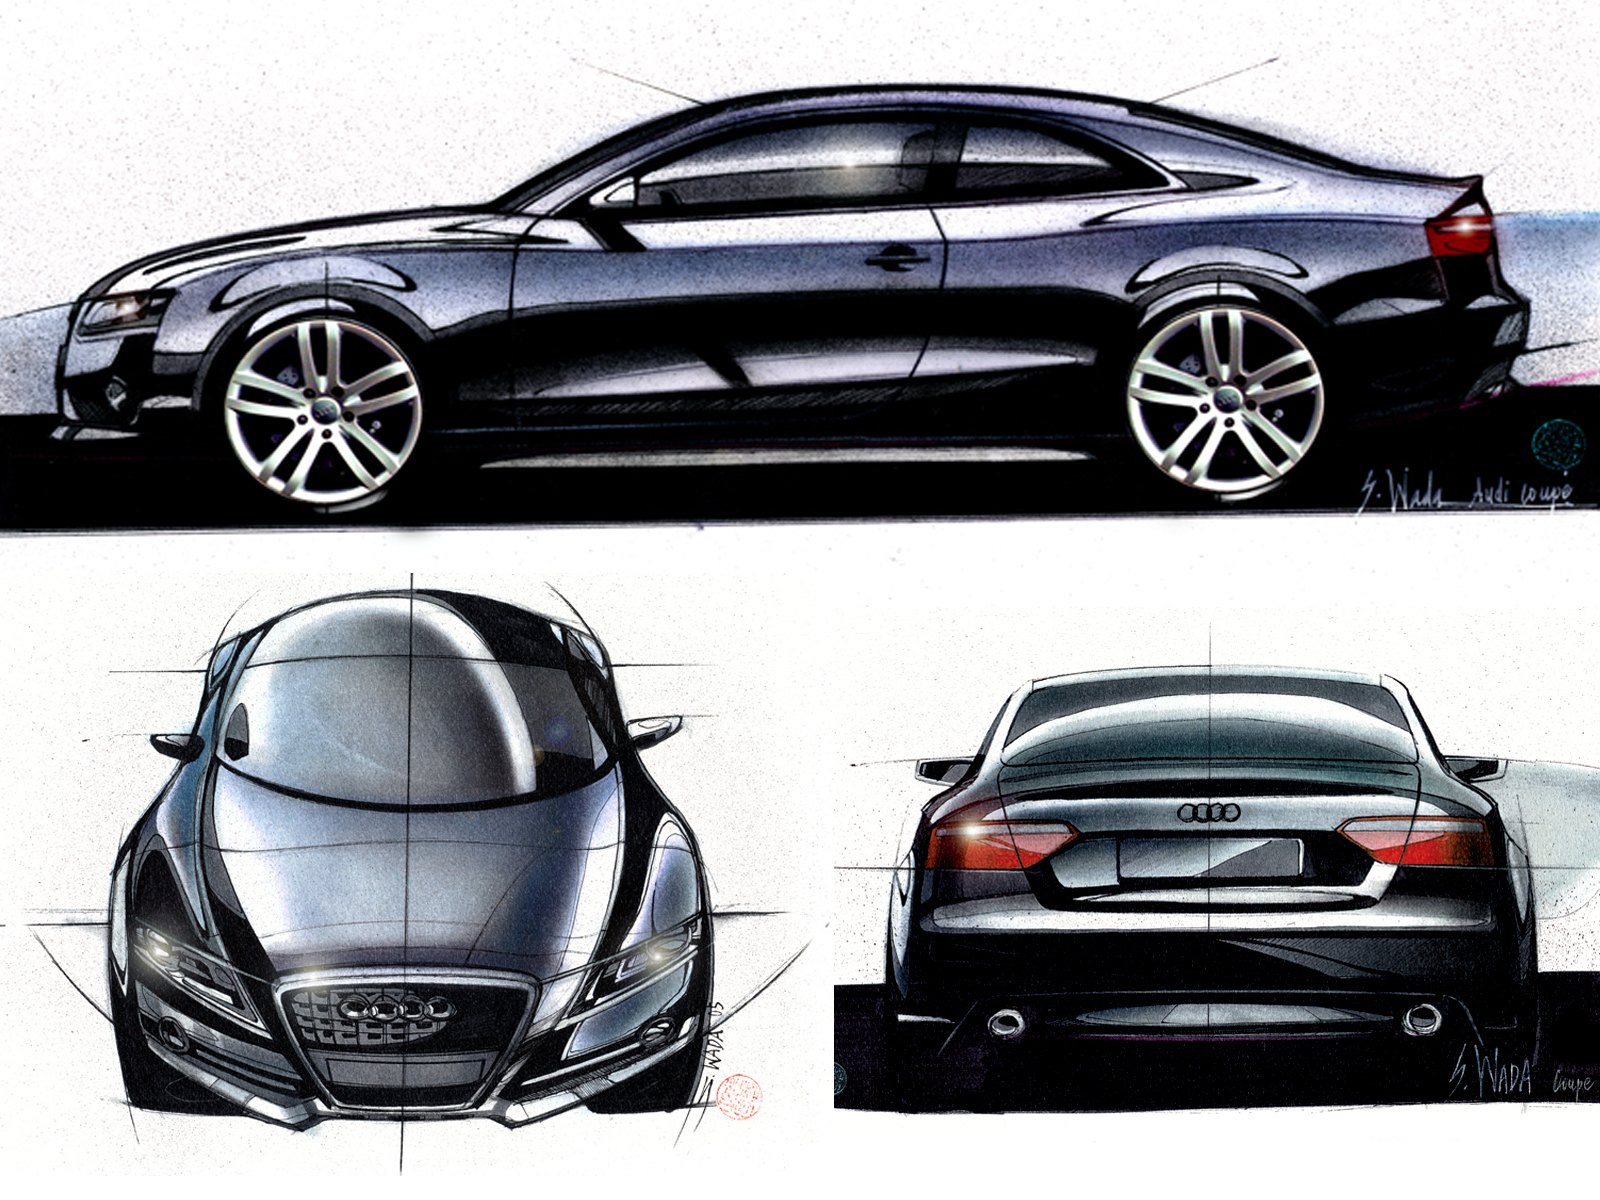 Satoshi Wada's Audi A6 rendering. Source: Car Design News.